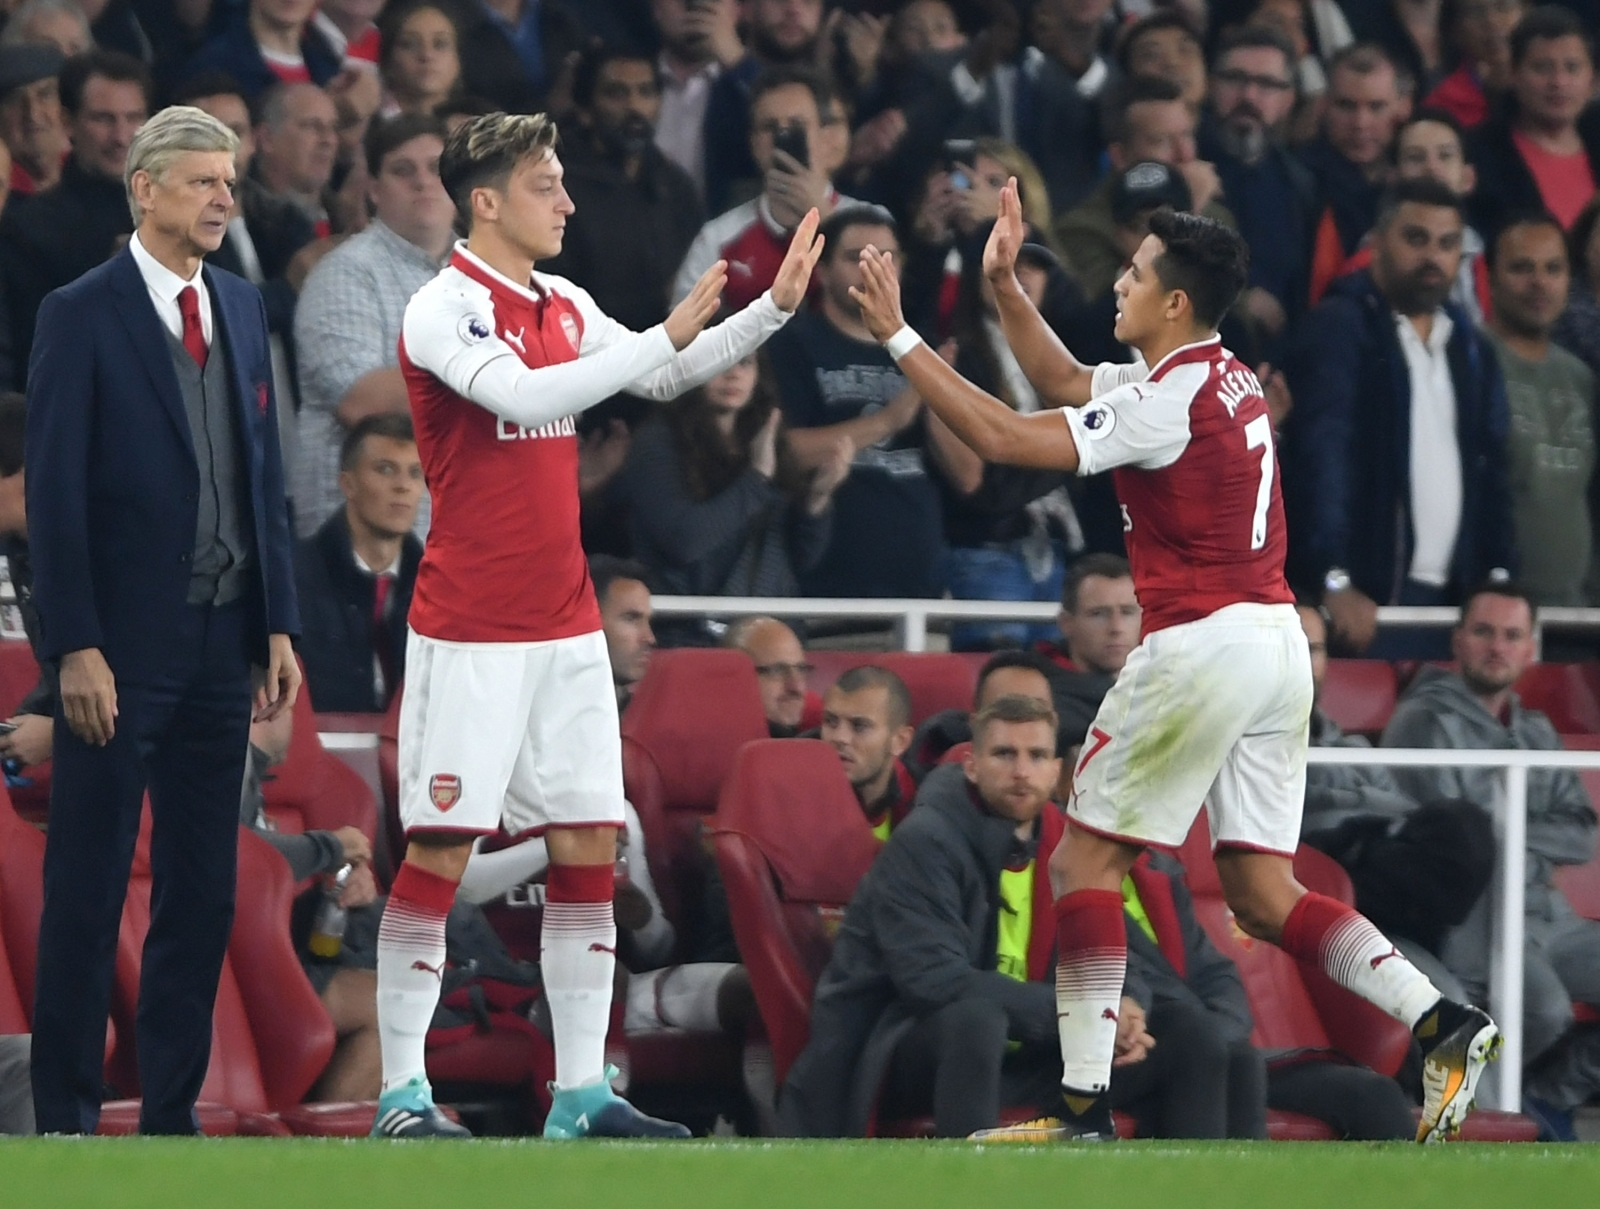 Mesut Ozil and Alexis Sanchez